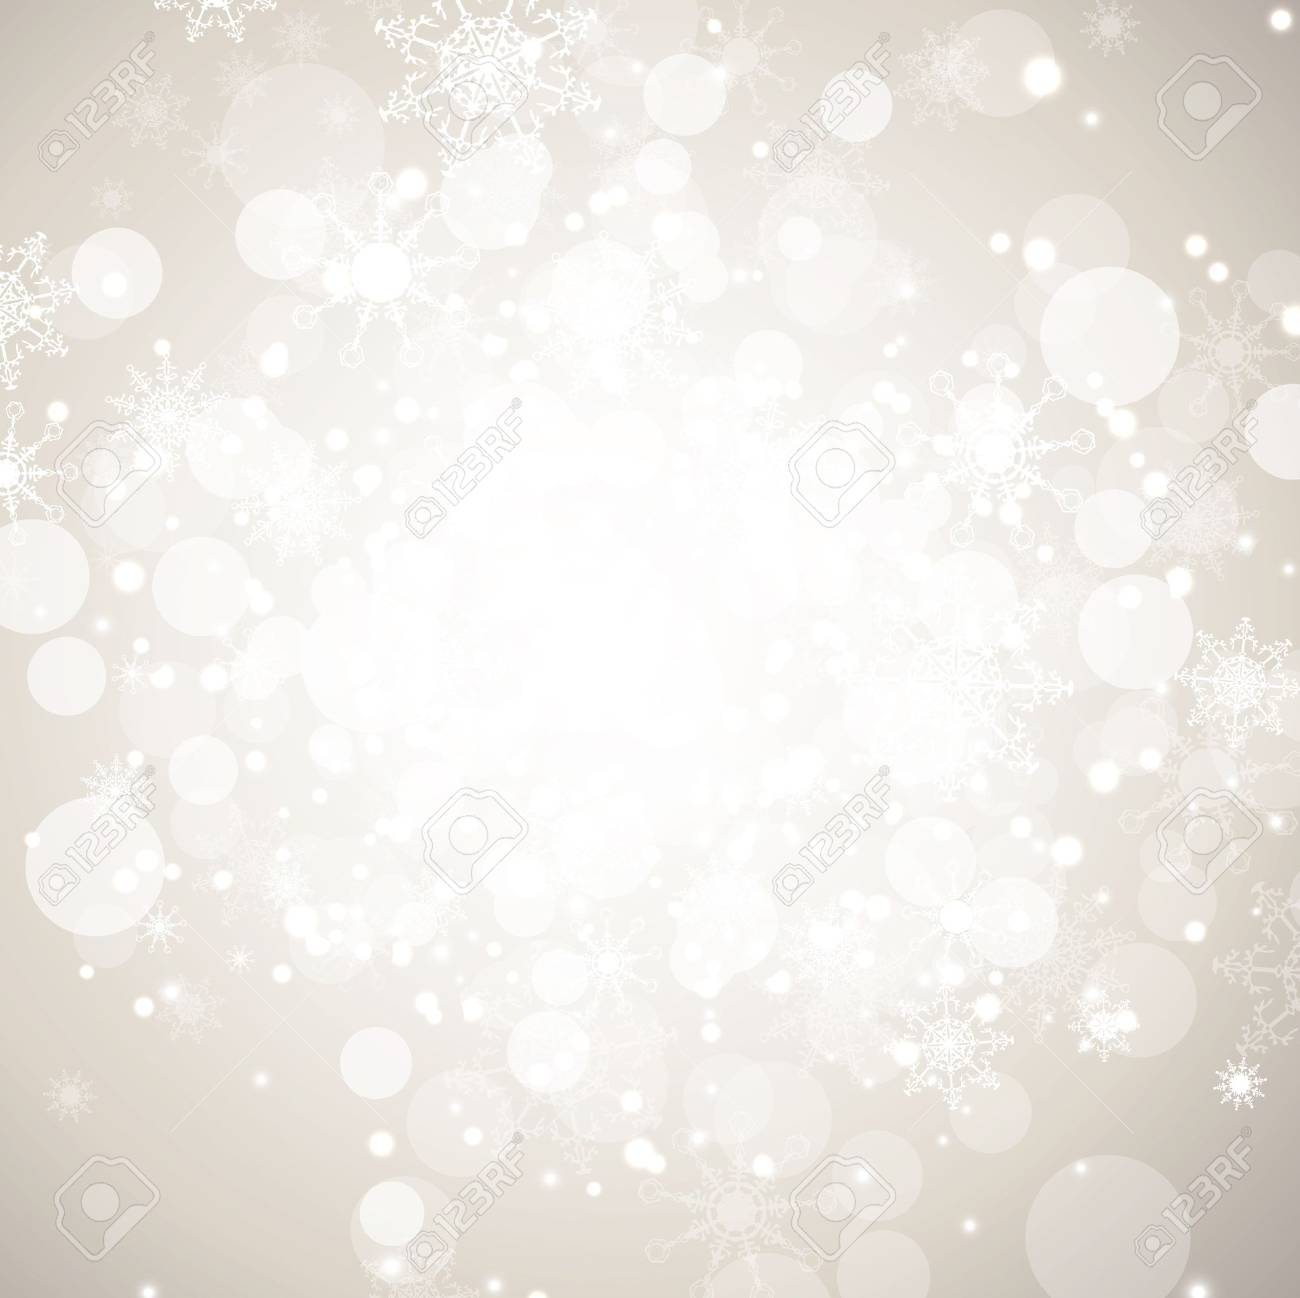 Winter holiday abstract background with snowflakes and copy-space - 11090025